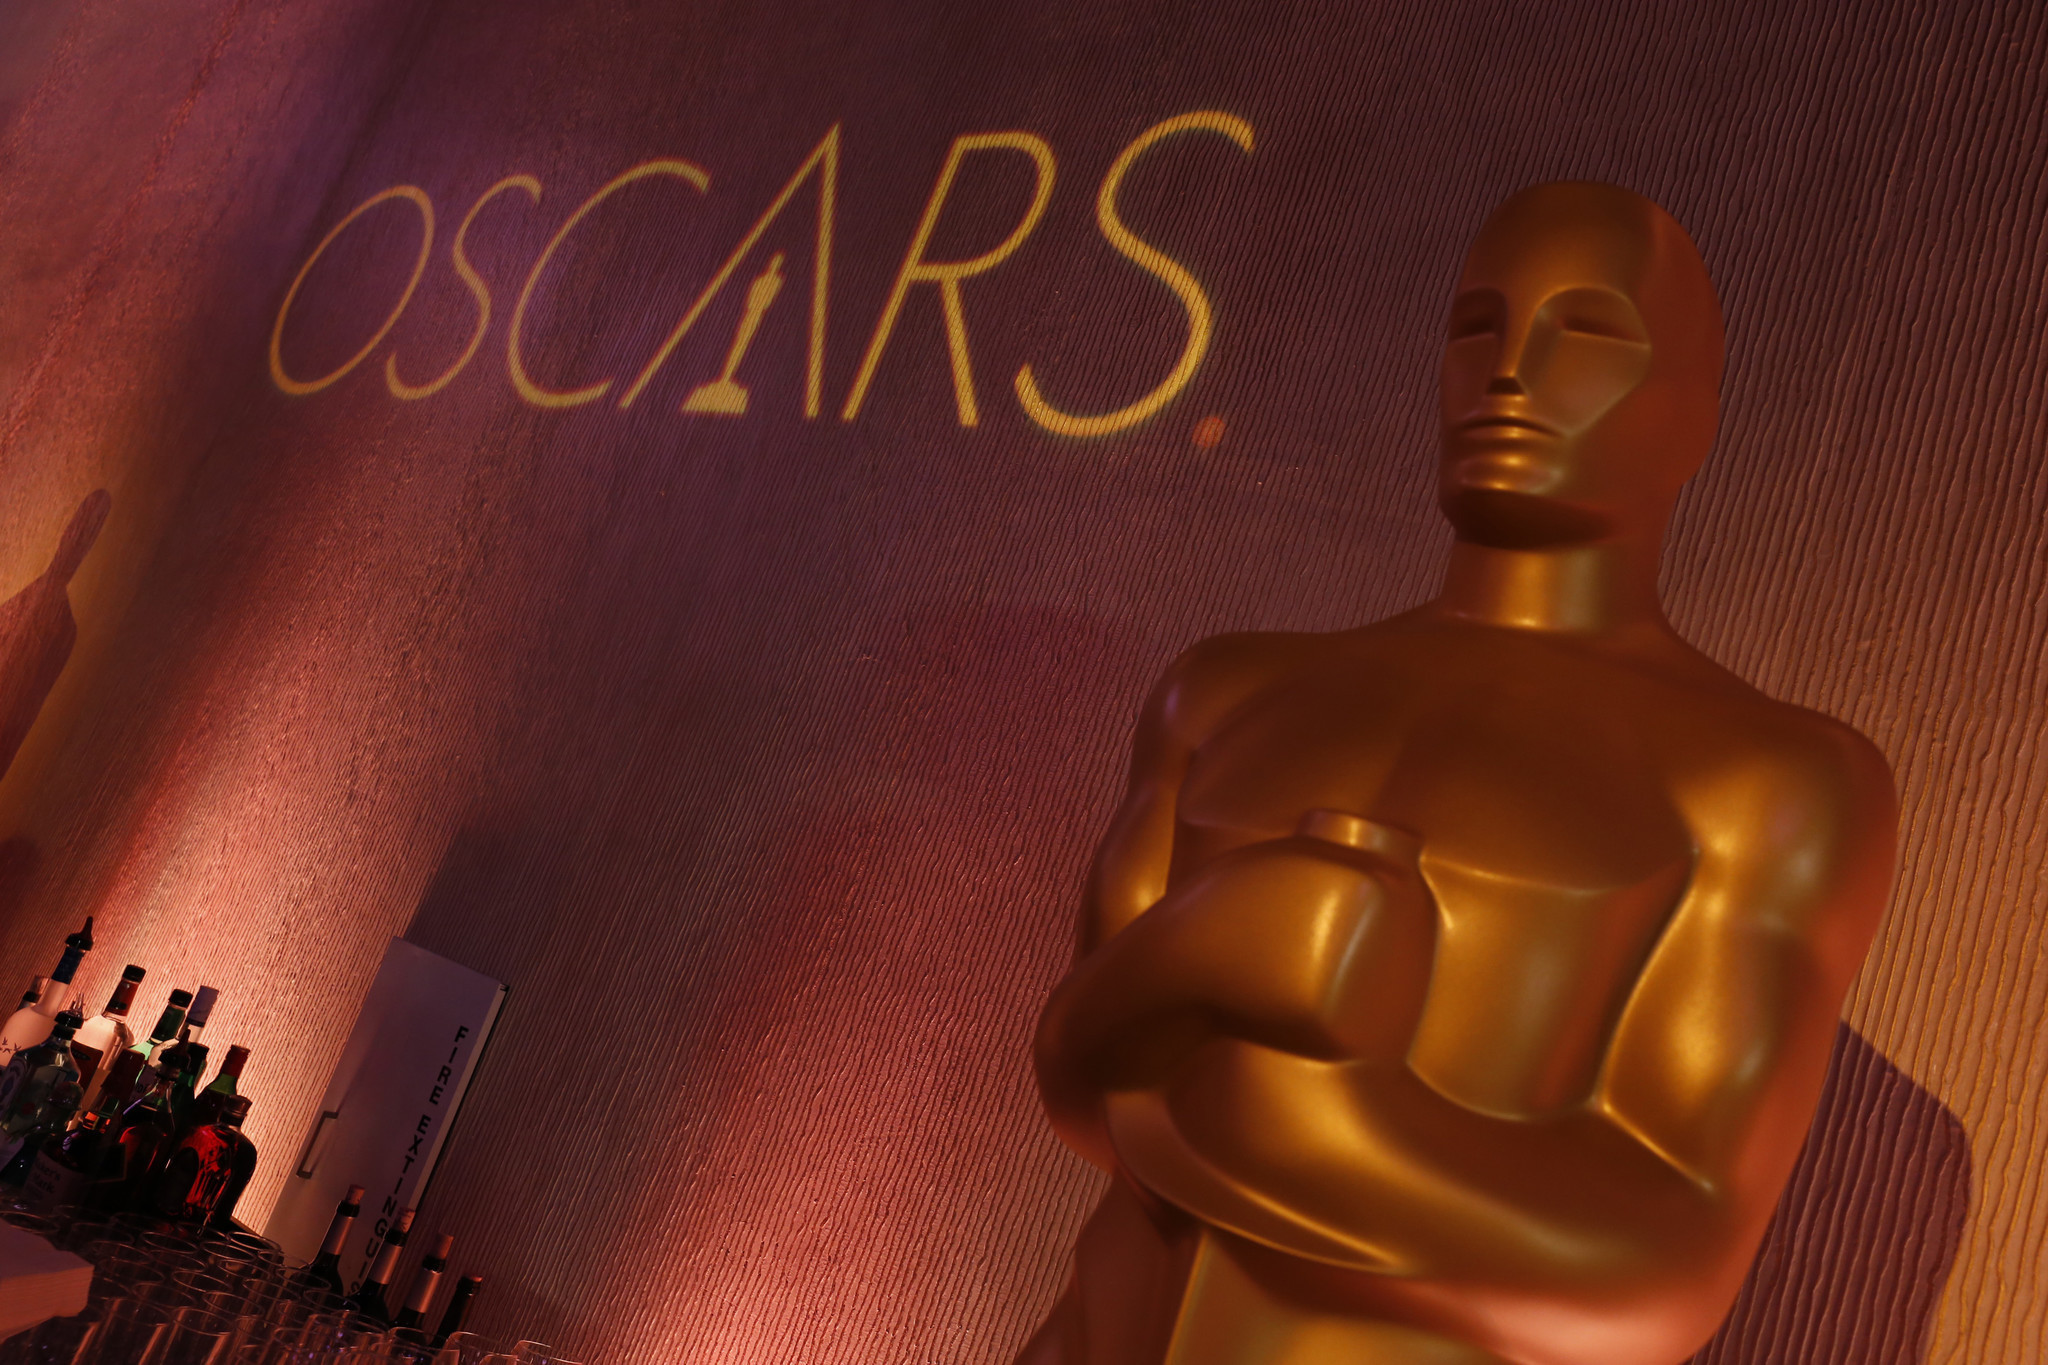 130342397671 moreover Hollywood party additionally Oscar Activities besides Star award life size cutout 72in likewise 7673 Raziz. on oscar party trophy favor